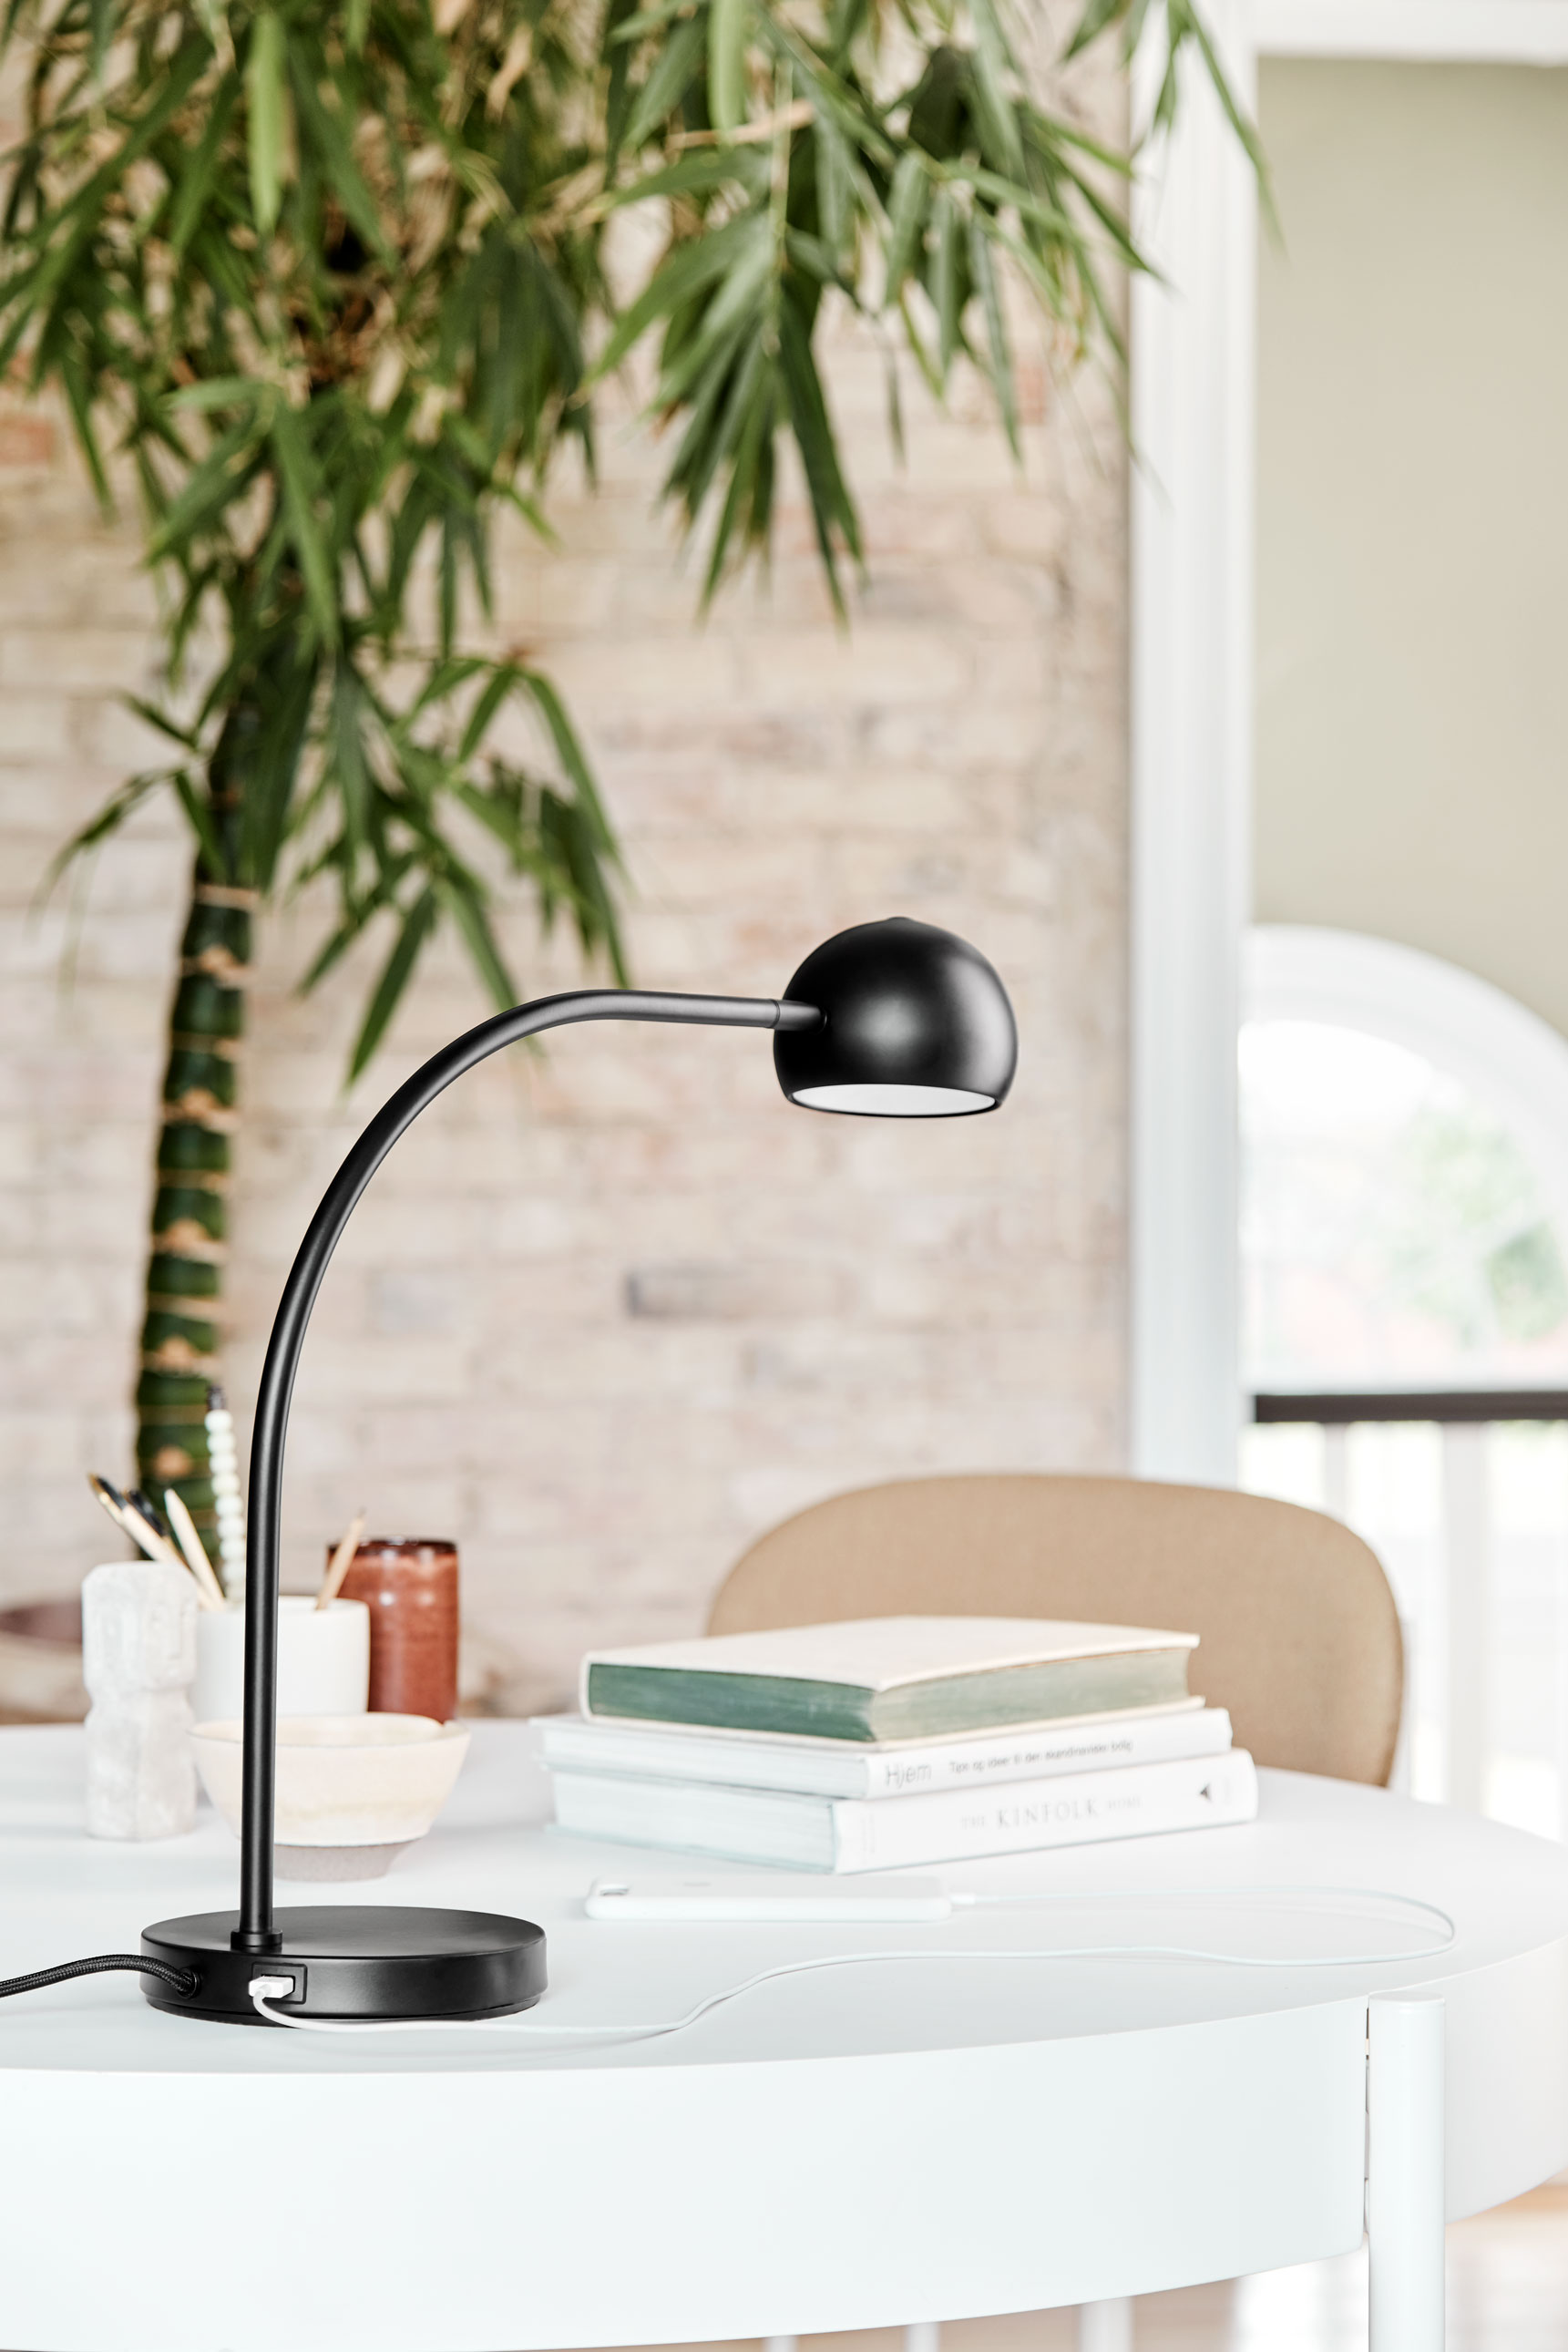 Ball-USB-table-lamp-black-matt---Lifestyle-Obdrupgård-2596.jpg